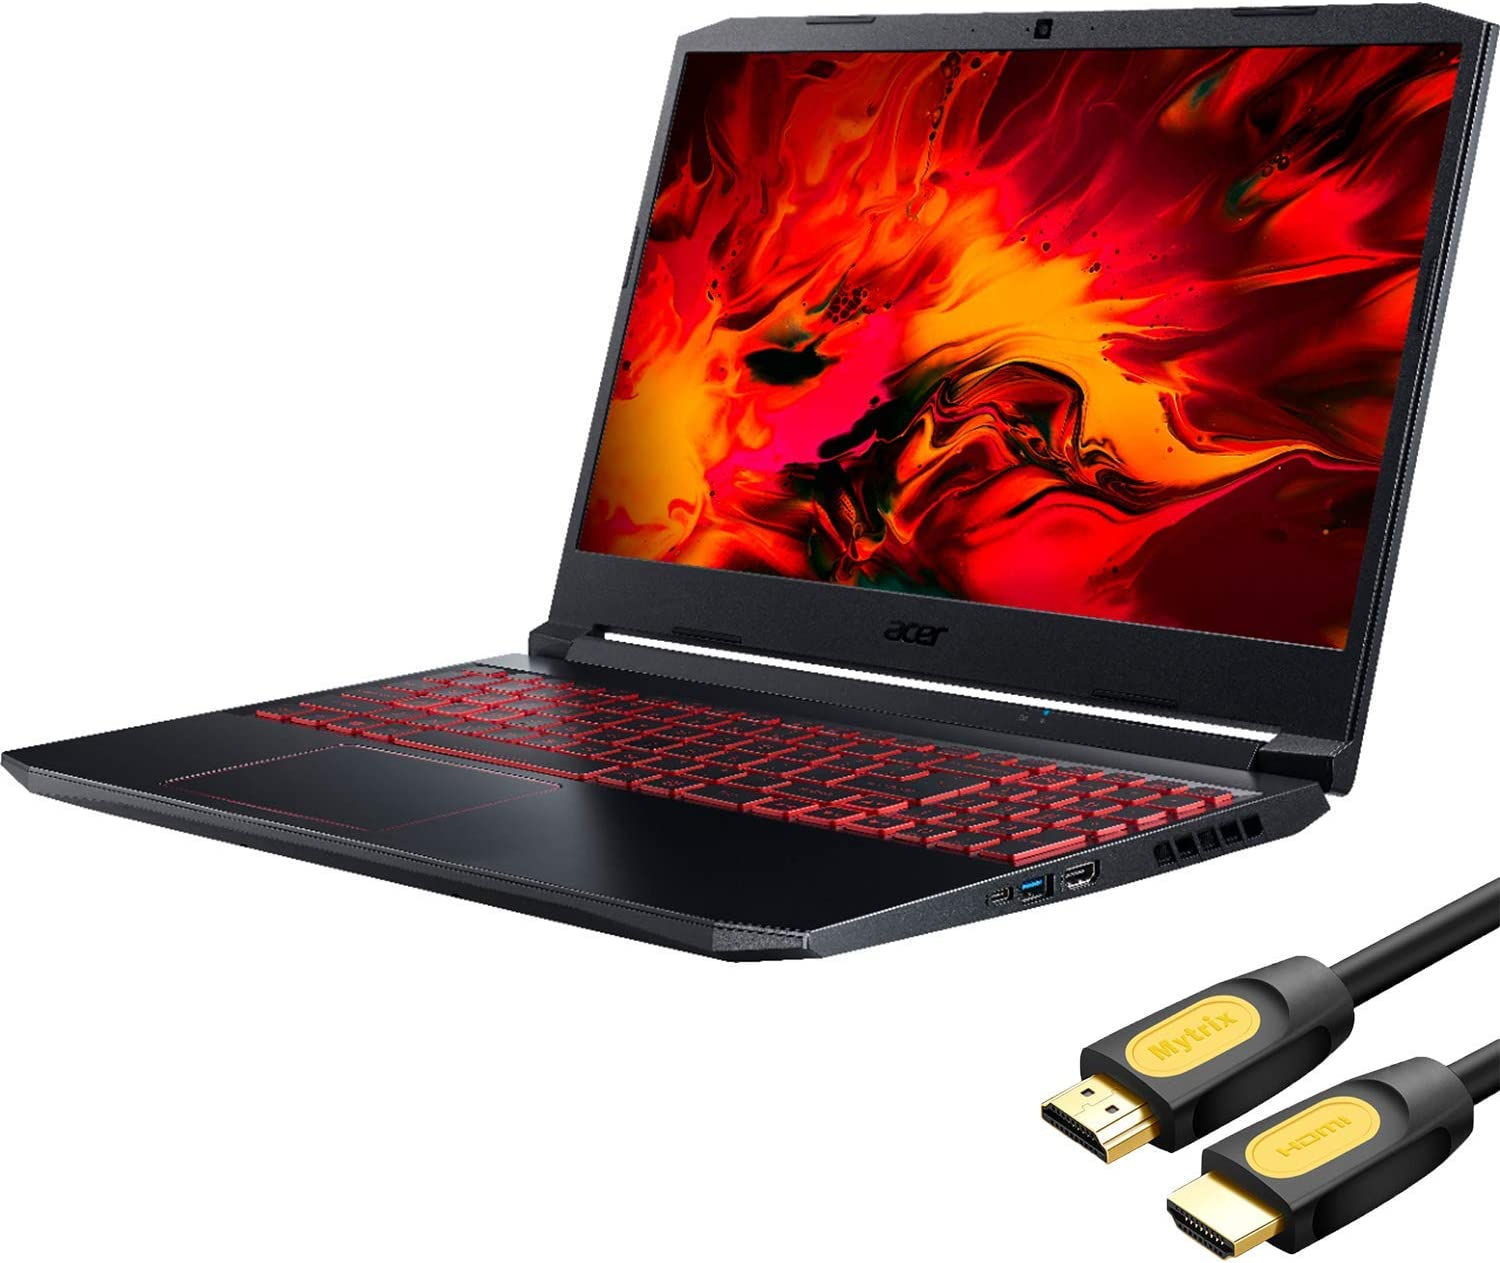 "Acer Nitro 5 AN515 Gaming Laptop, 15.6"" IPS FHD, AMD Ryzen 5 4600H (Beat i7-9750H), GTX 1650, 6 Cores up to 4.00 GHz, 16GB RAM, 512GB SSD, Backlit, RJ-45, Wi-Fi 6, Mytrix HDMI Cable, Win 10 (Renewed)"